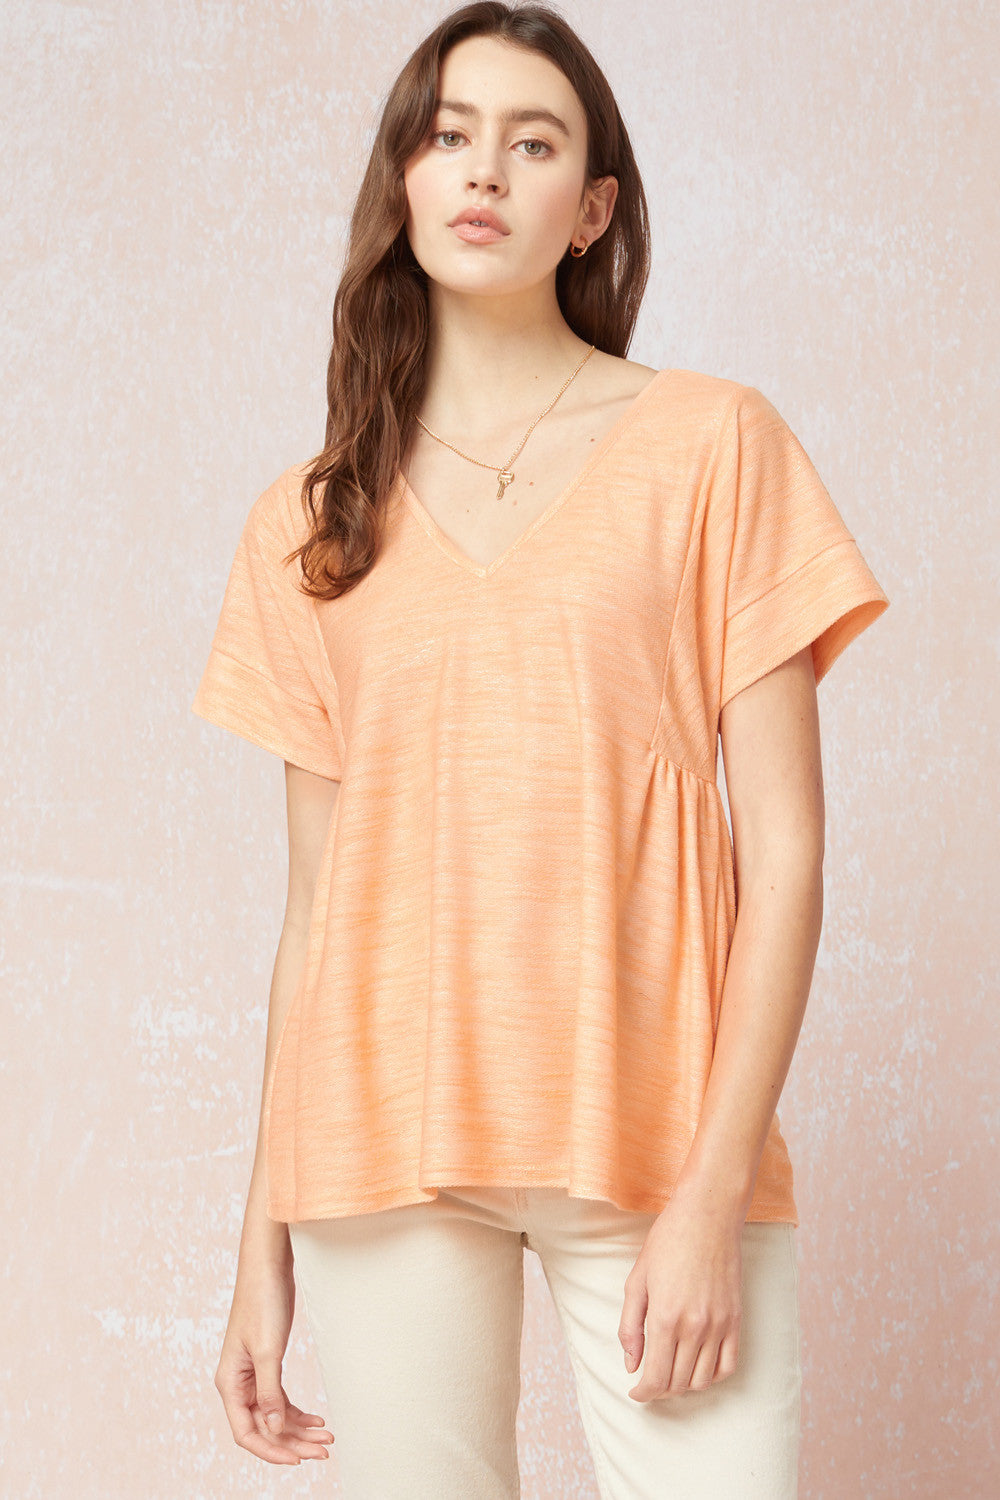 Heathered v-neck short sleeve top featuring gathered detail at sides